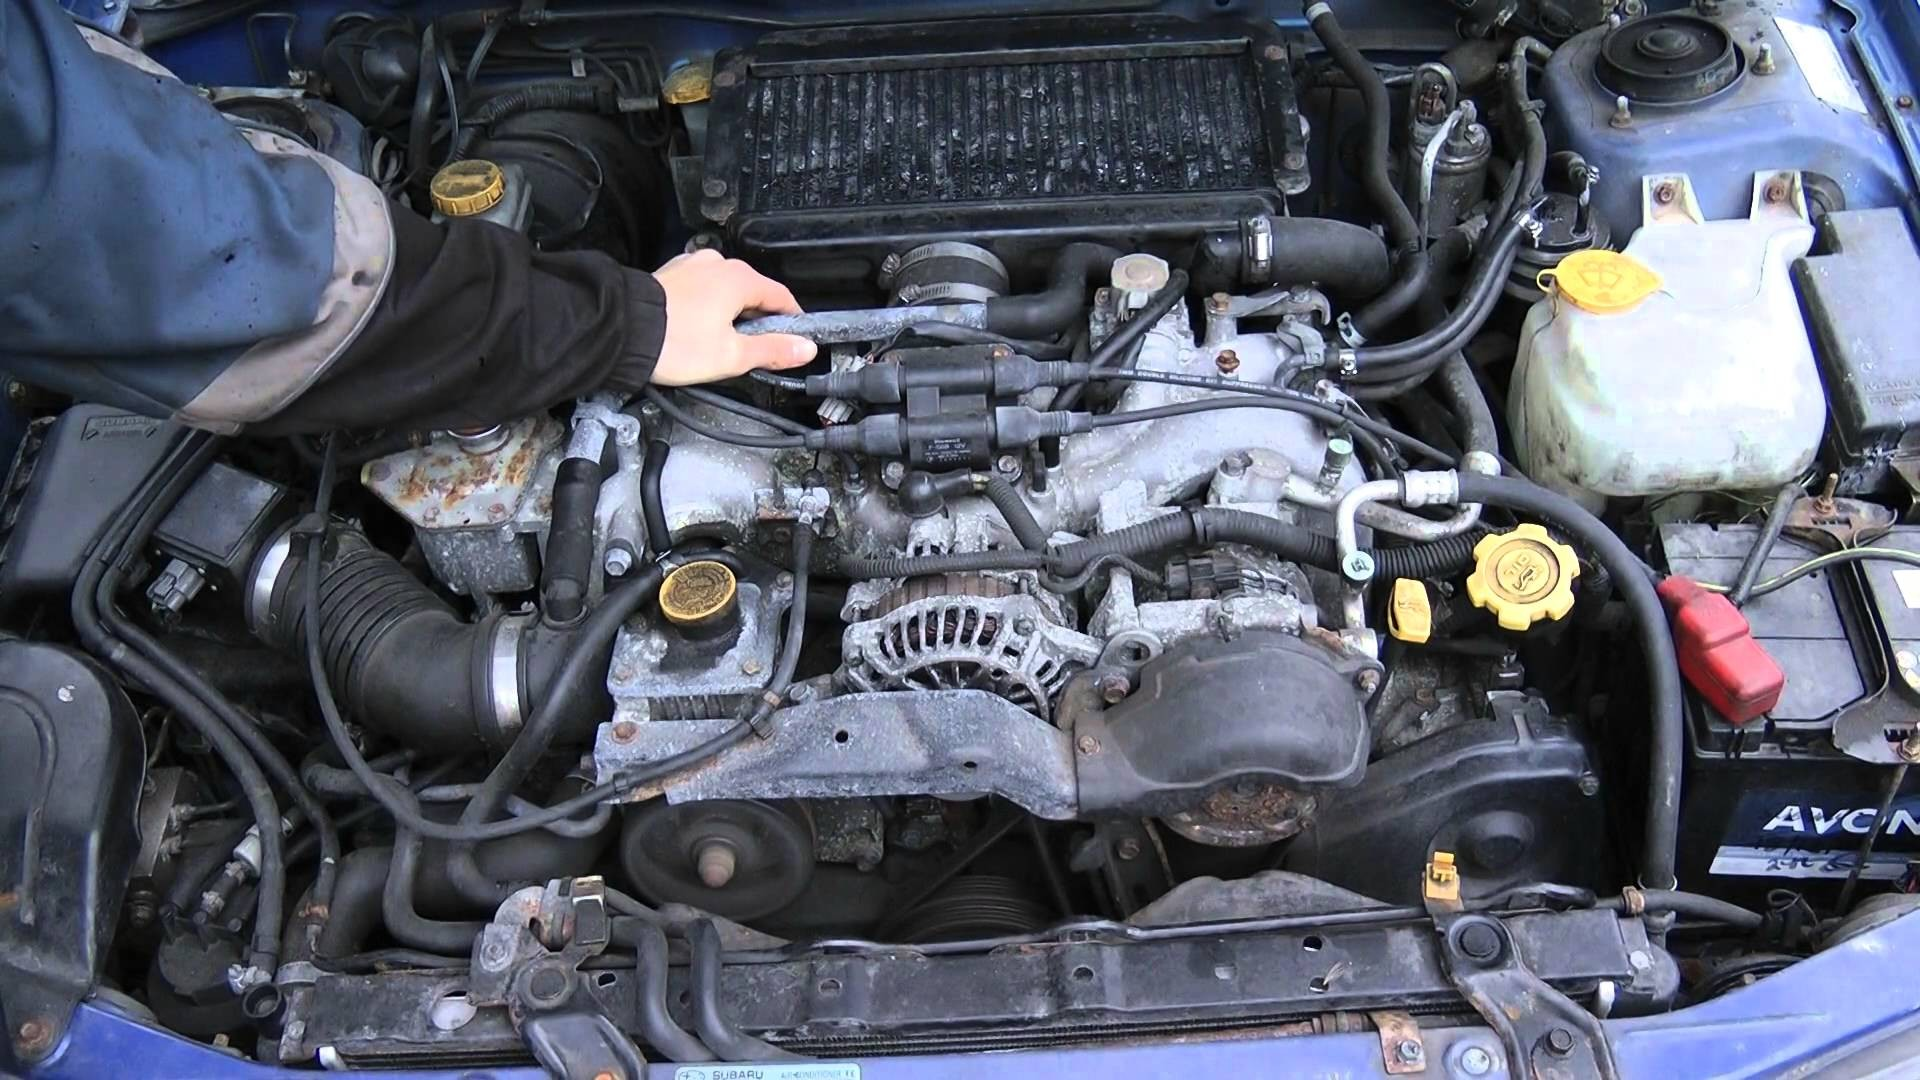 Subaru Impreza Engine Diagram 2005 Outback Wiring 2000 Related Post